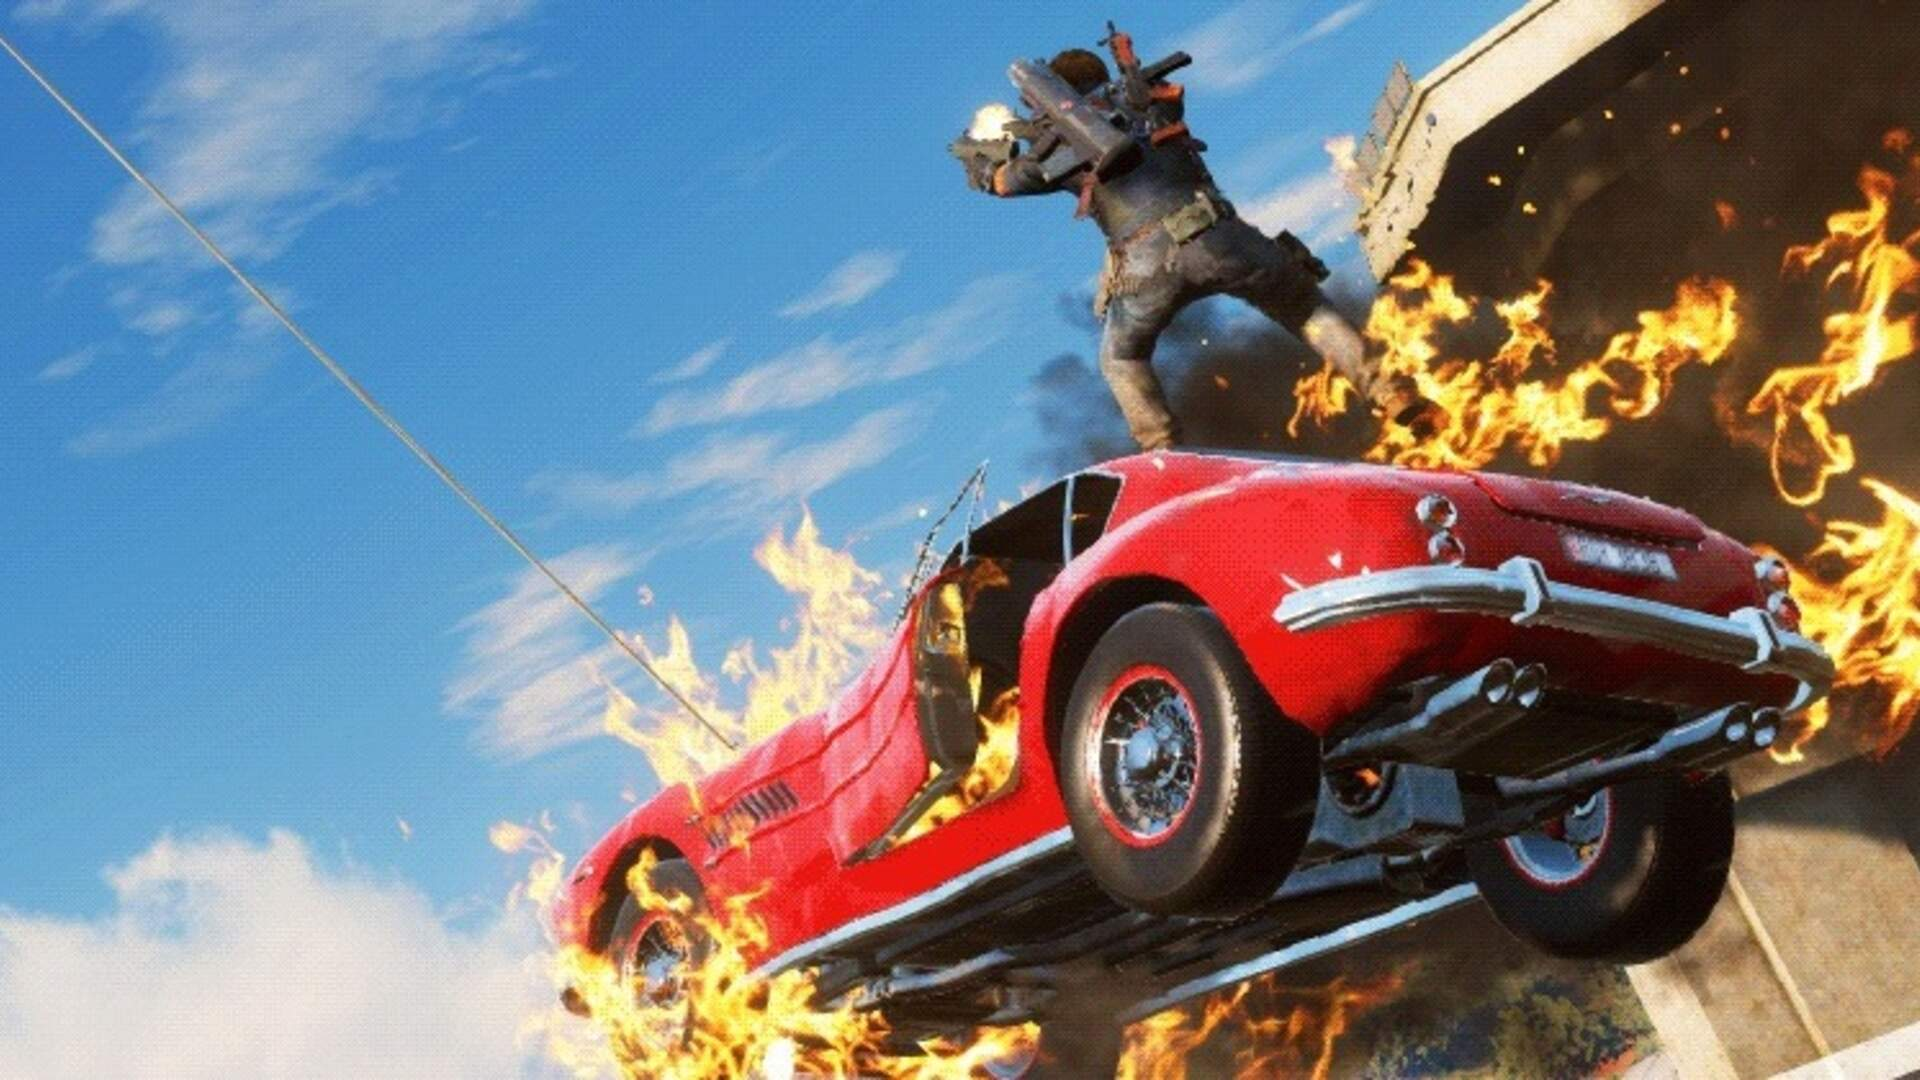 Just Cause 3 Story Mission Guide: Mario's Rebel Drops